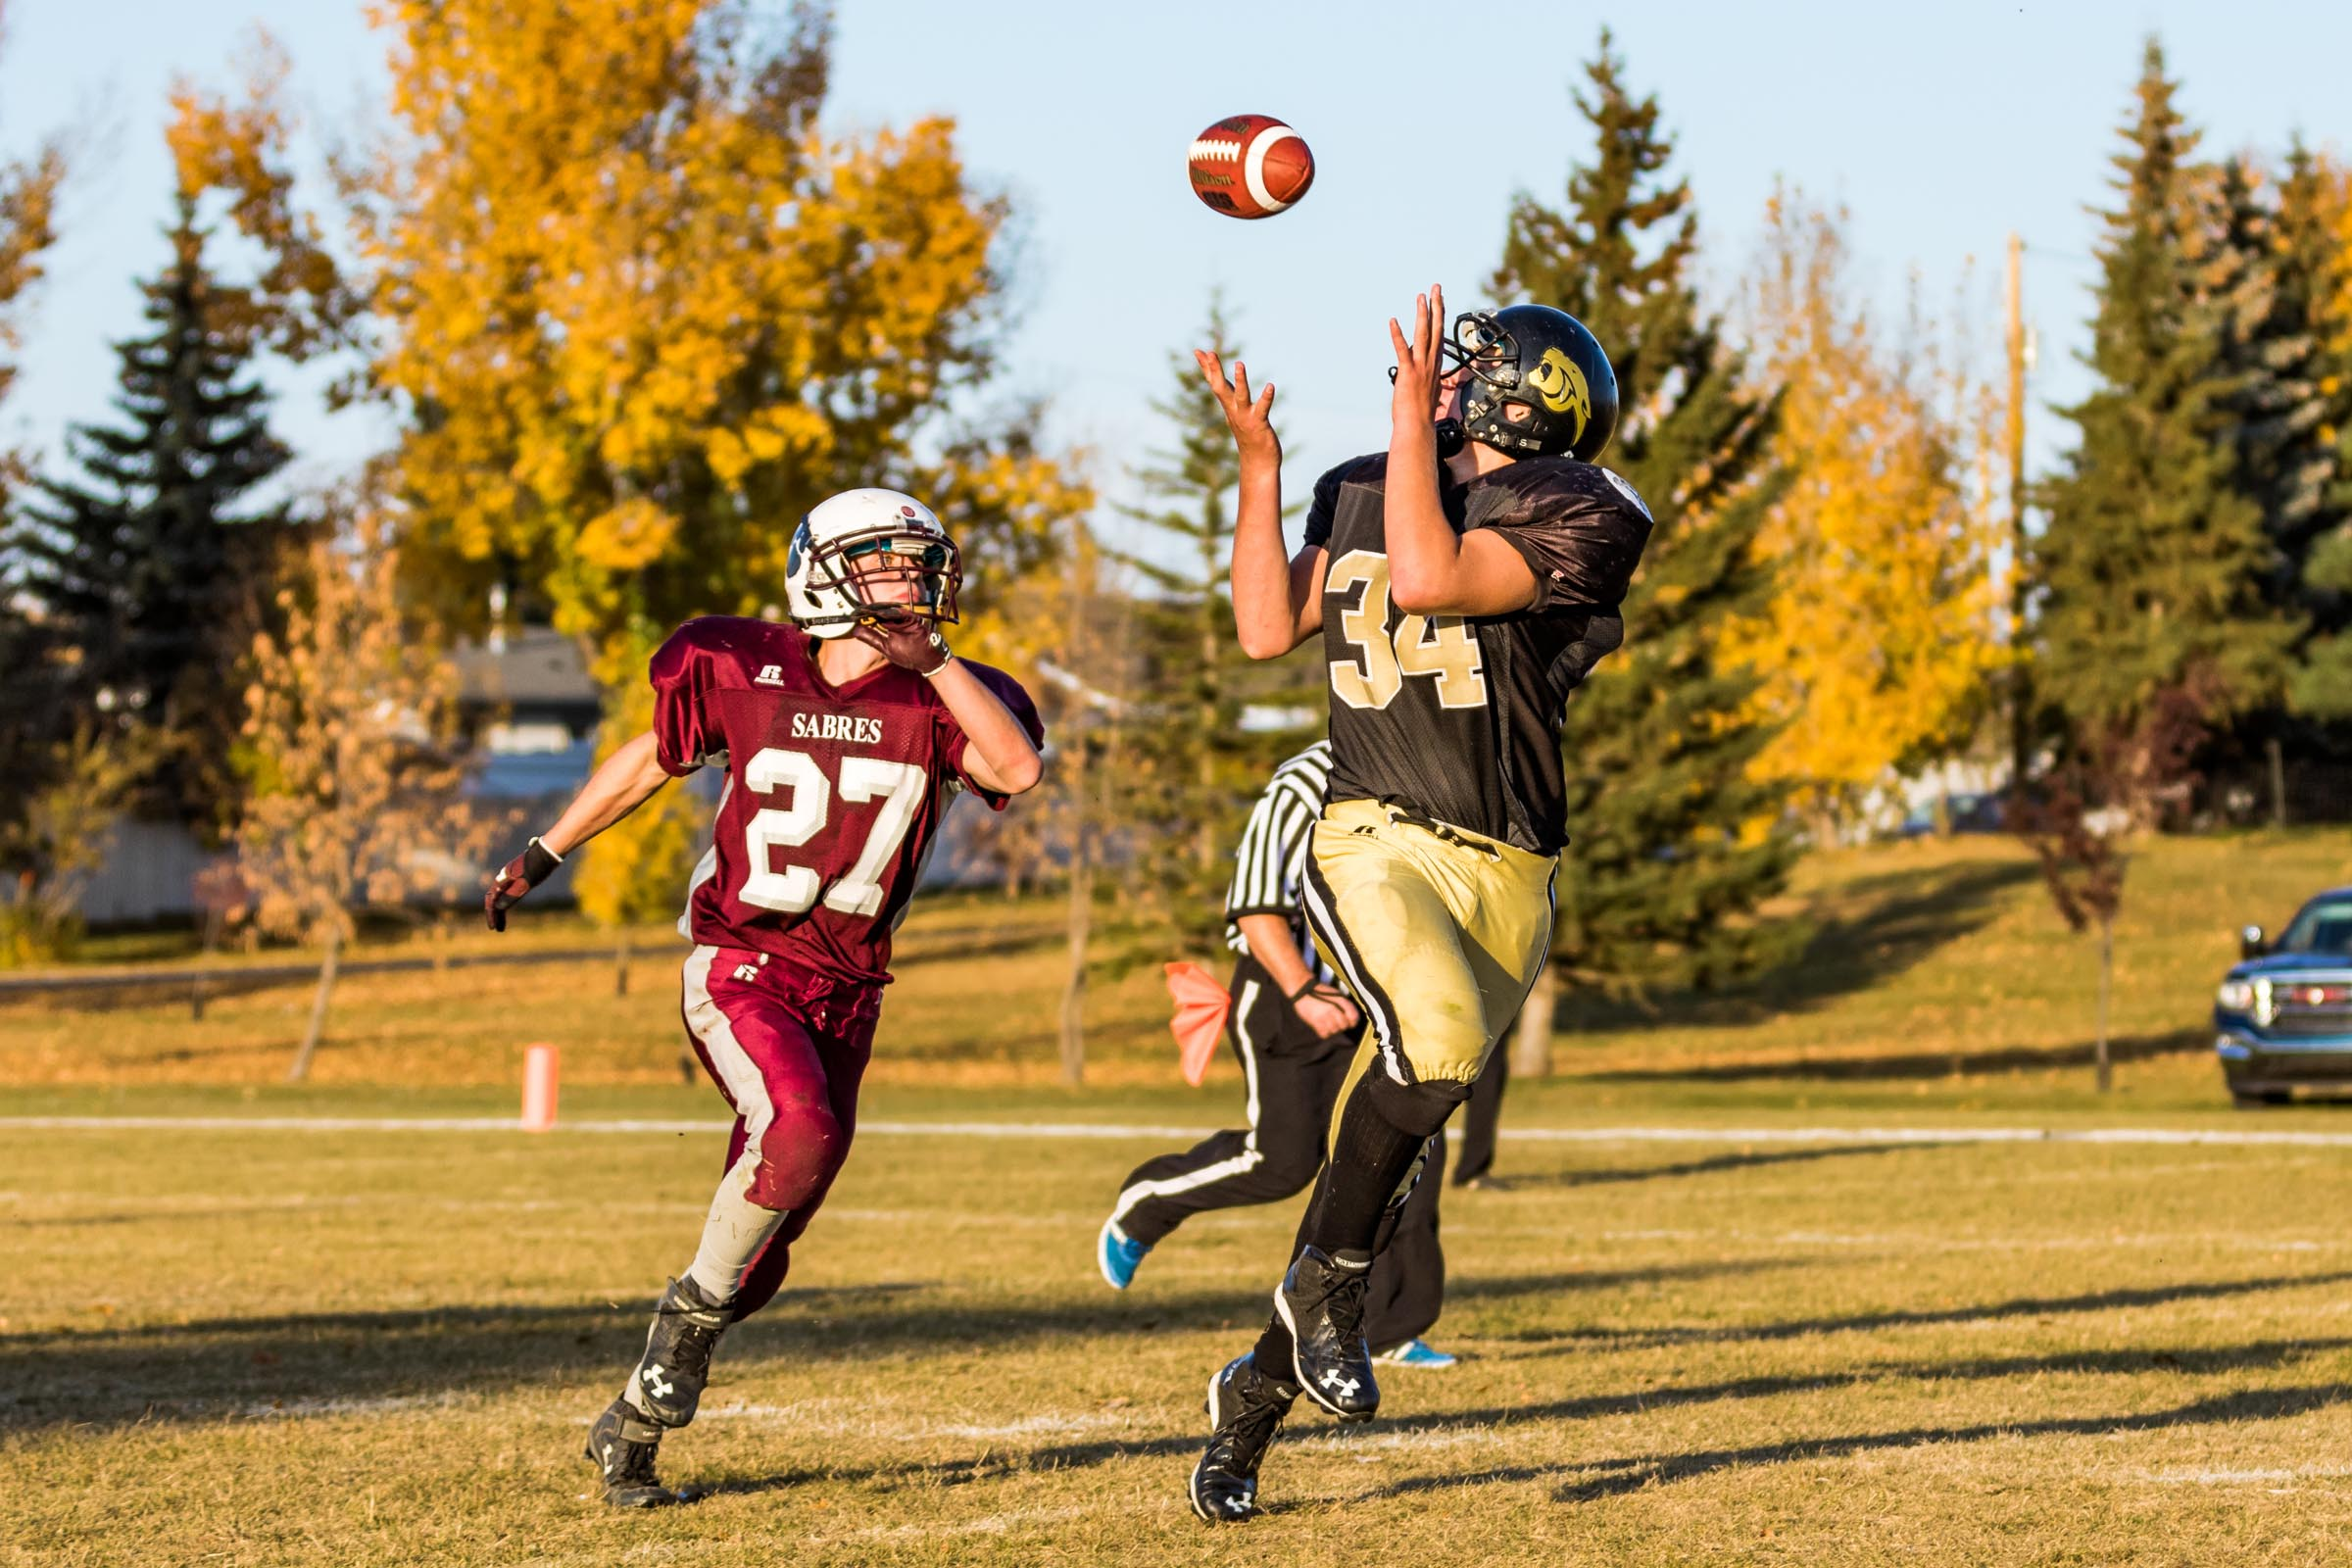 0319_macklinsabres_haguepanthers_football_September 30, 2016.jpg